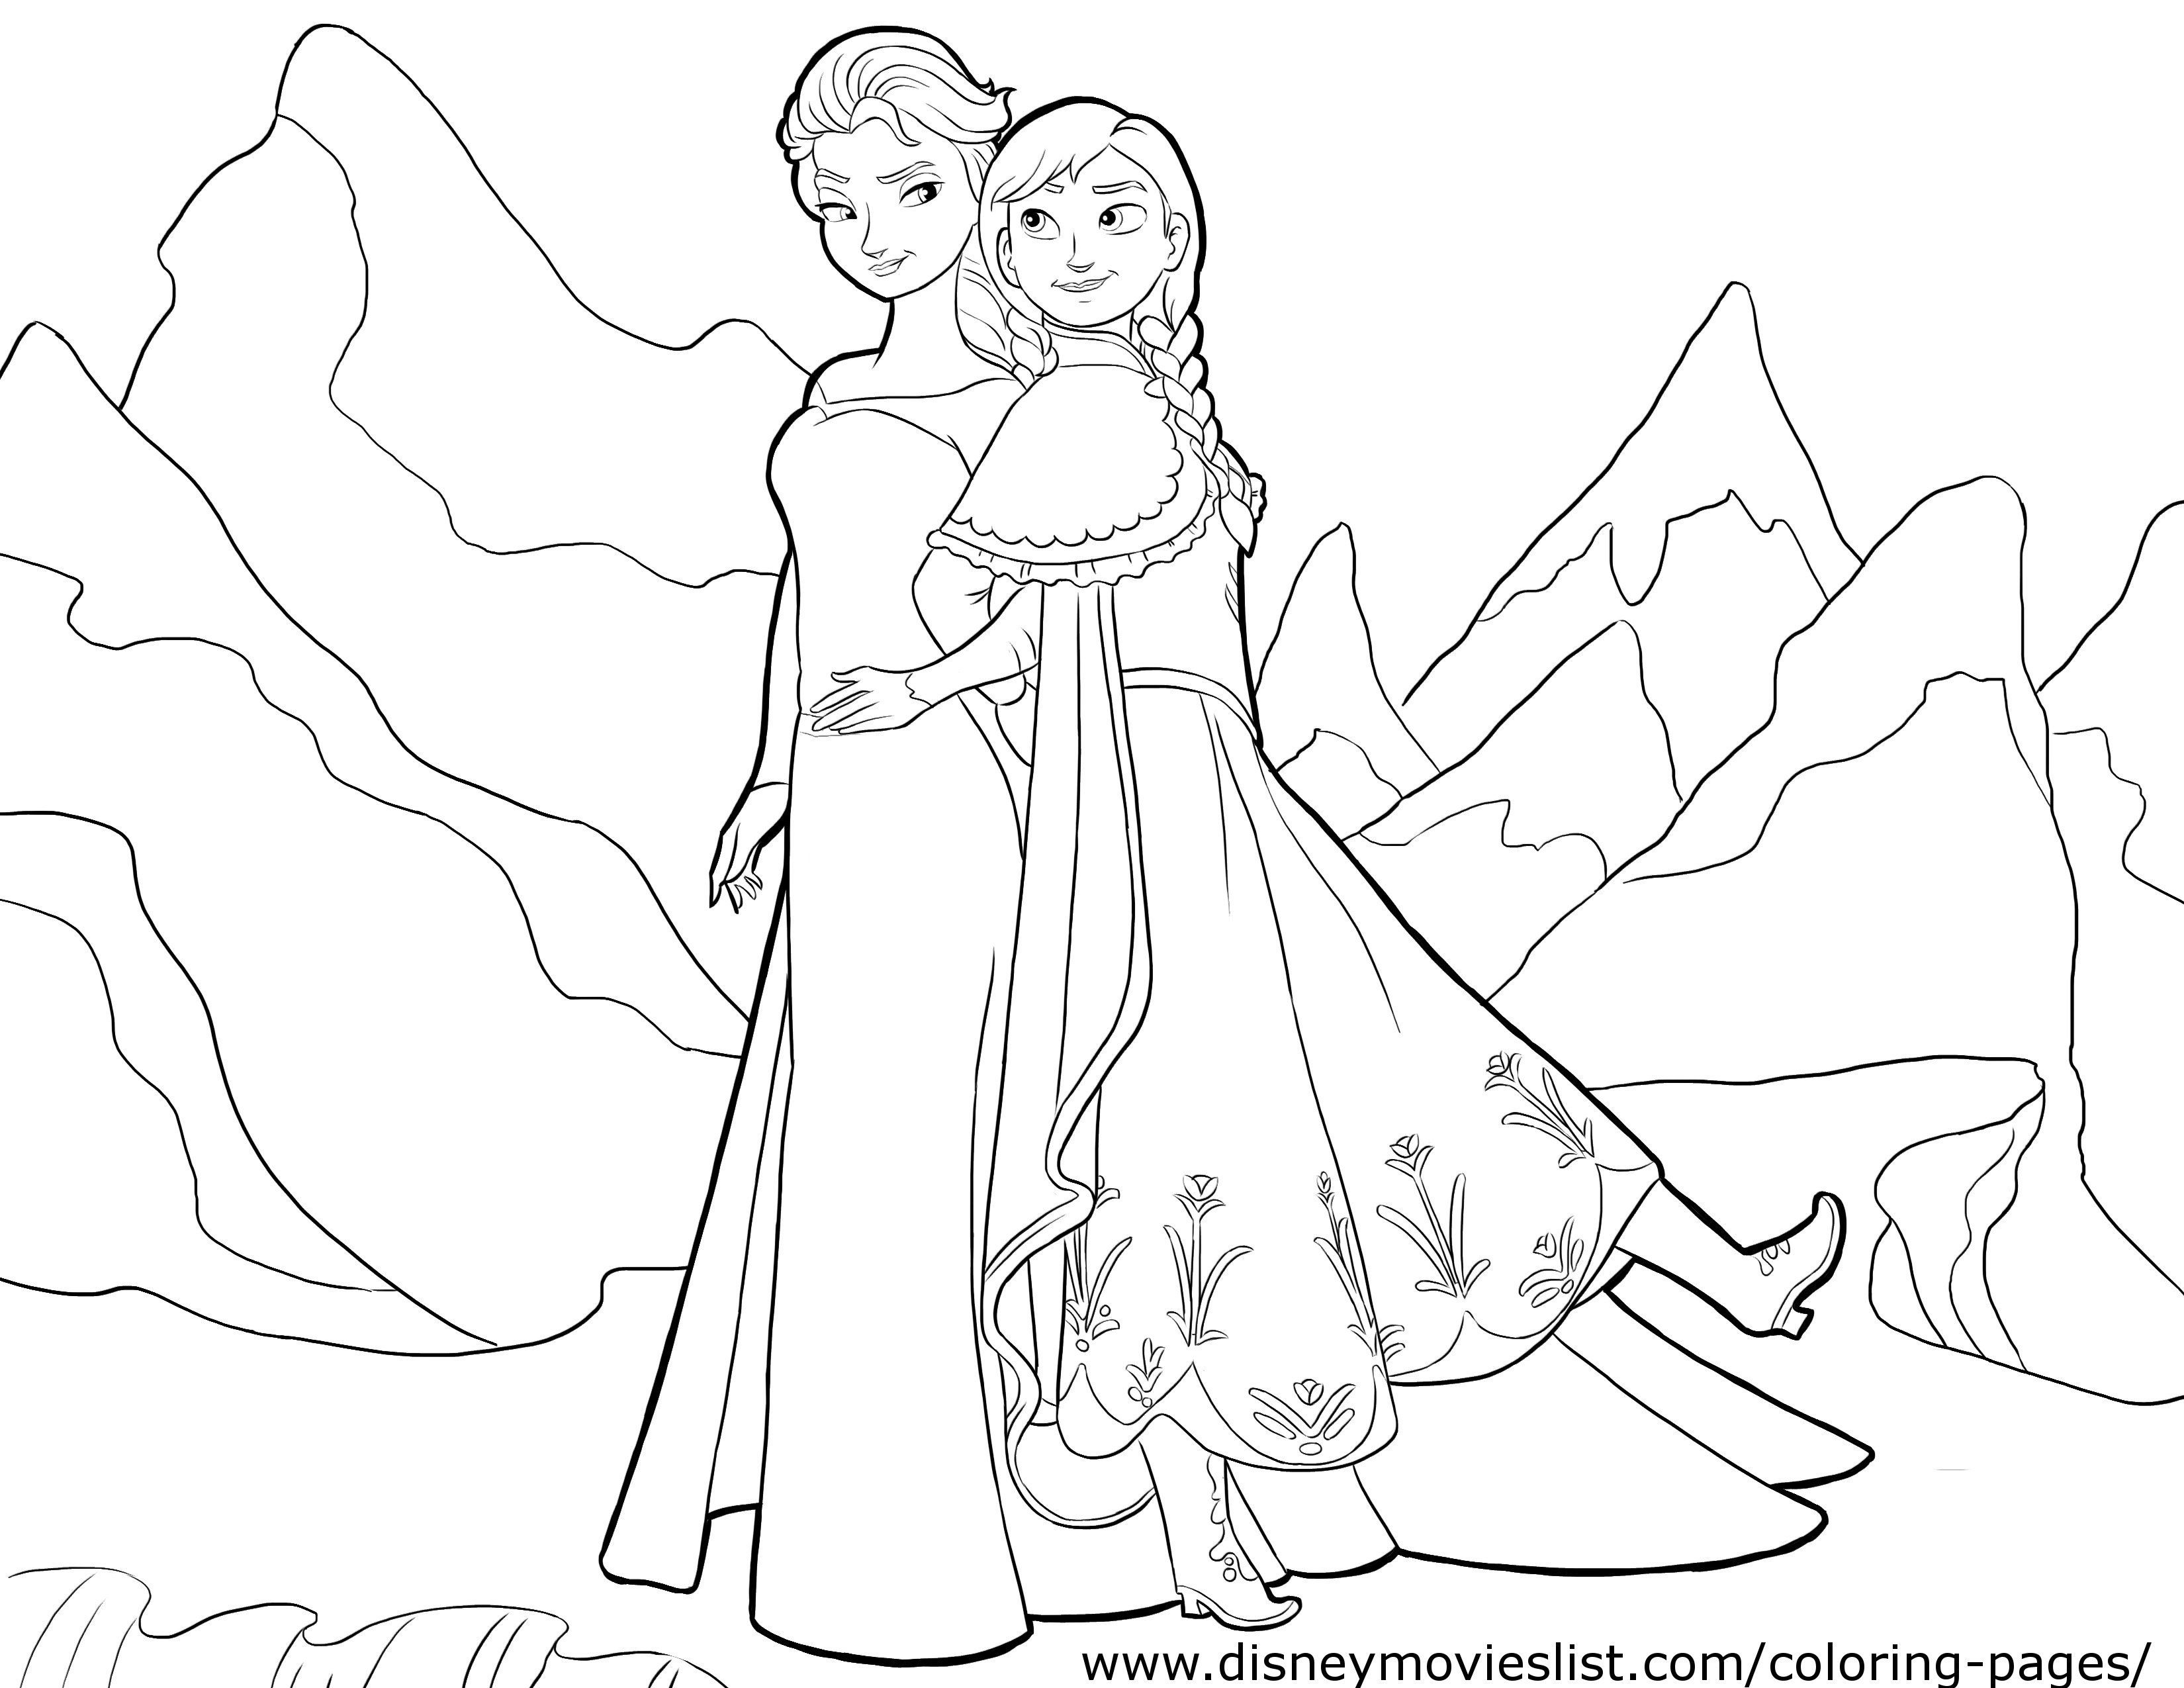 Two Princess Nature Coloring Pages For Kids Free Printable